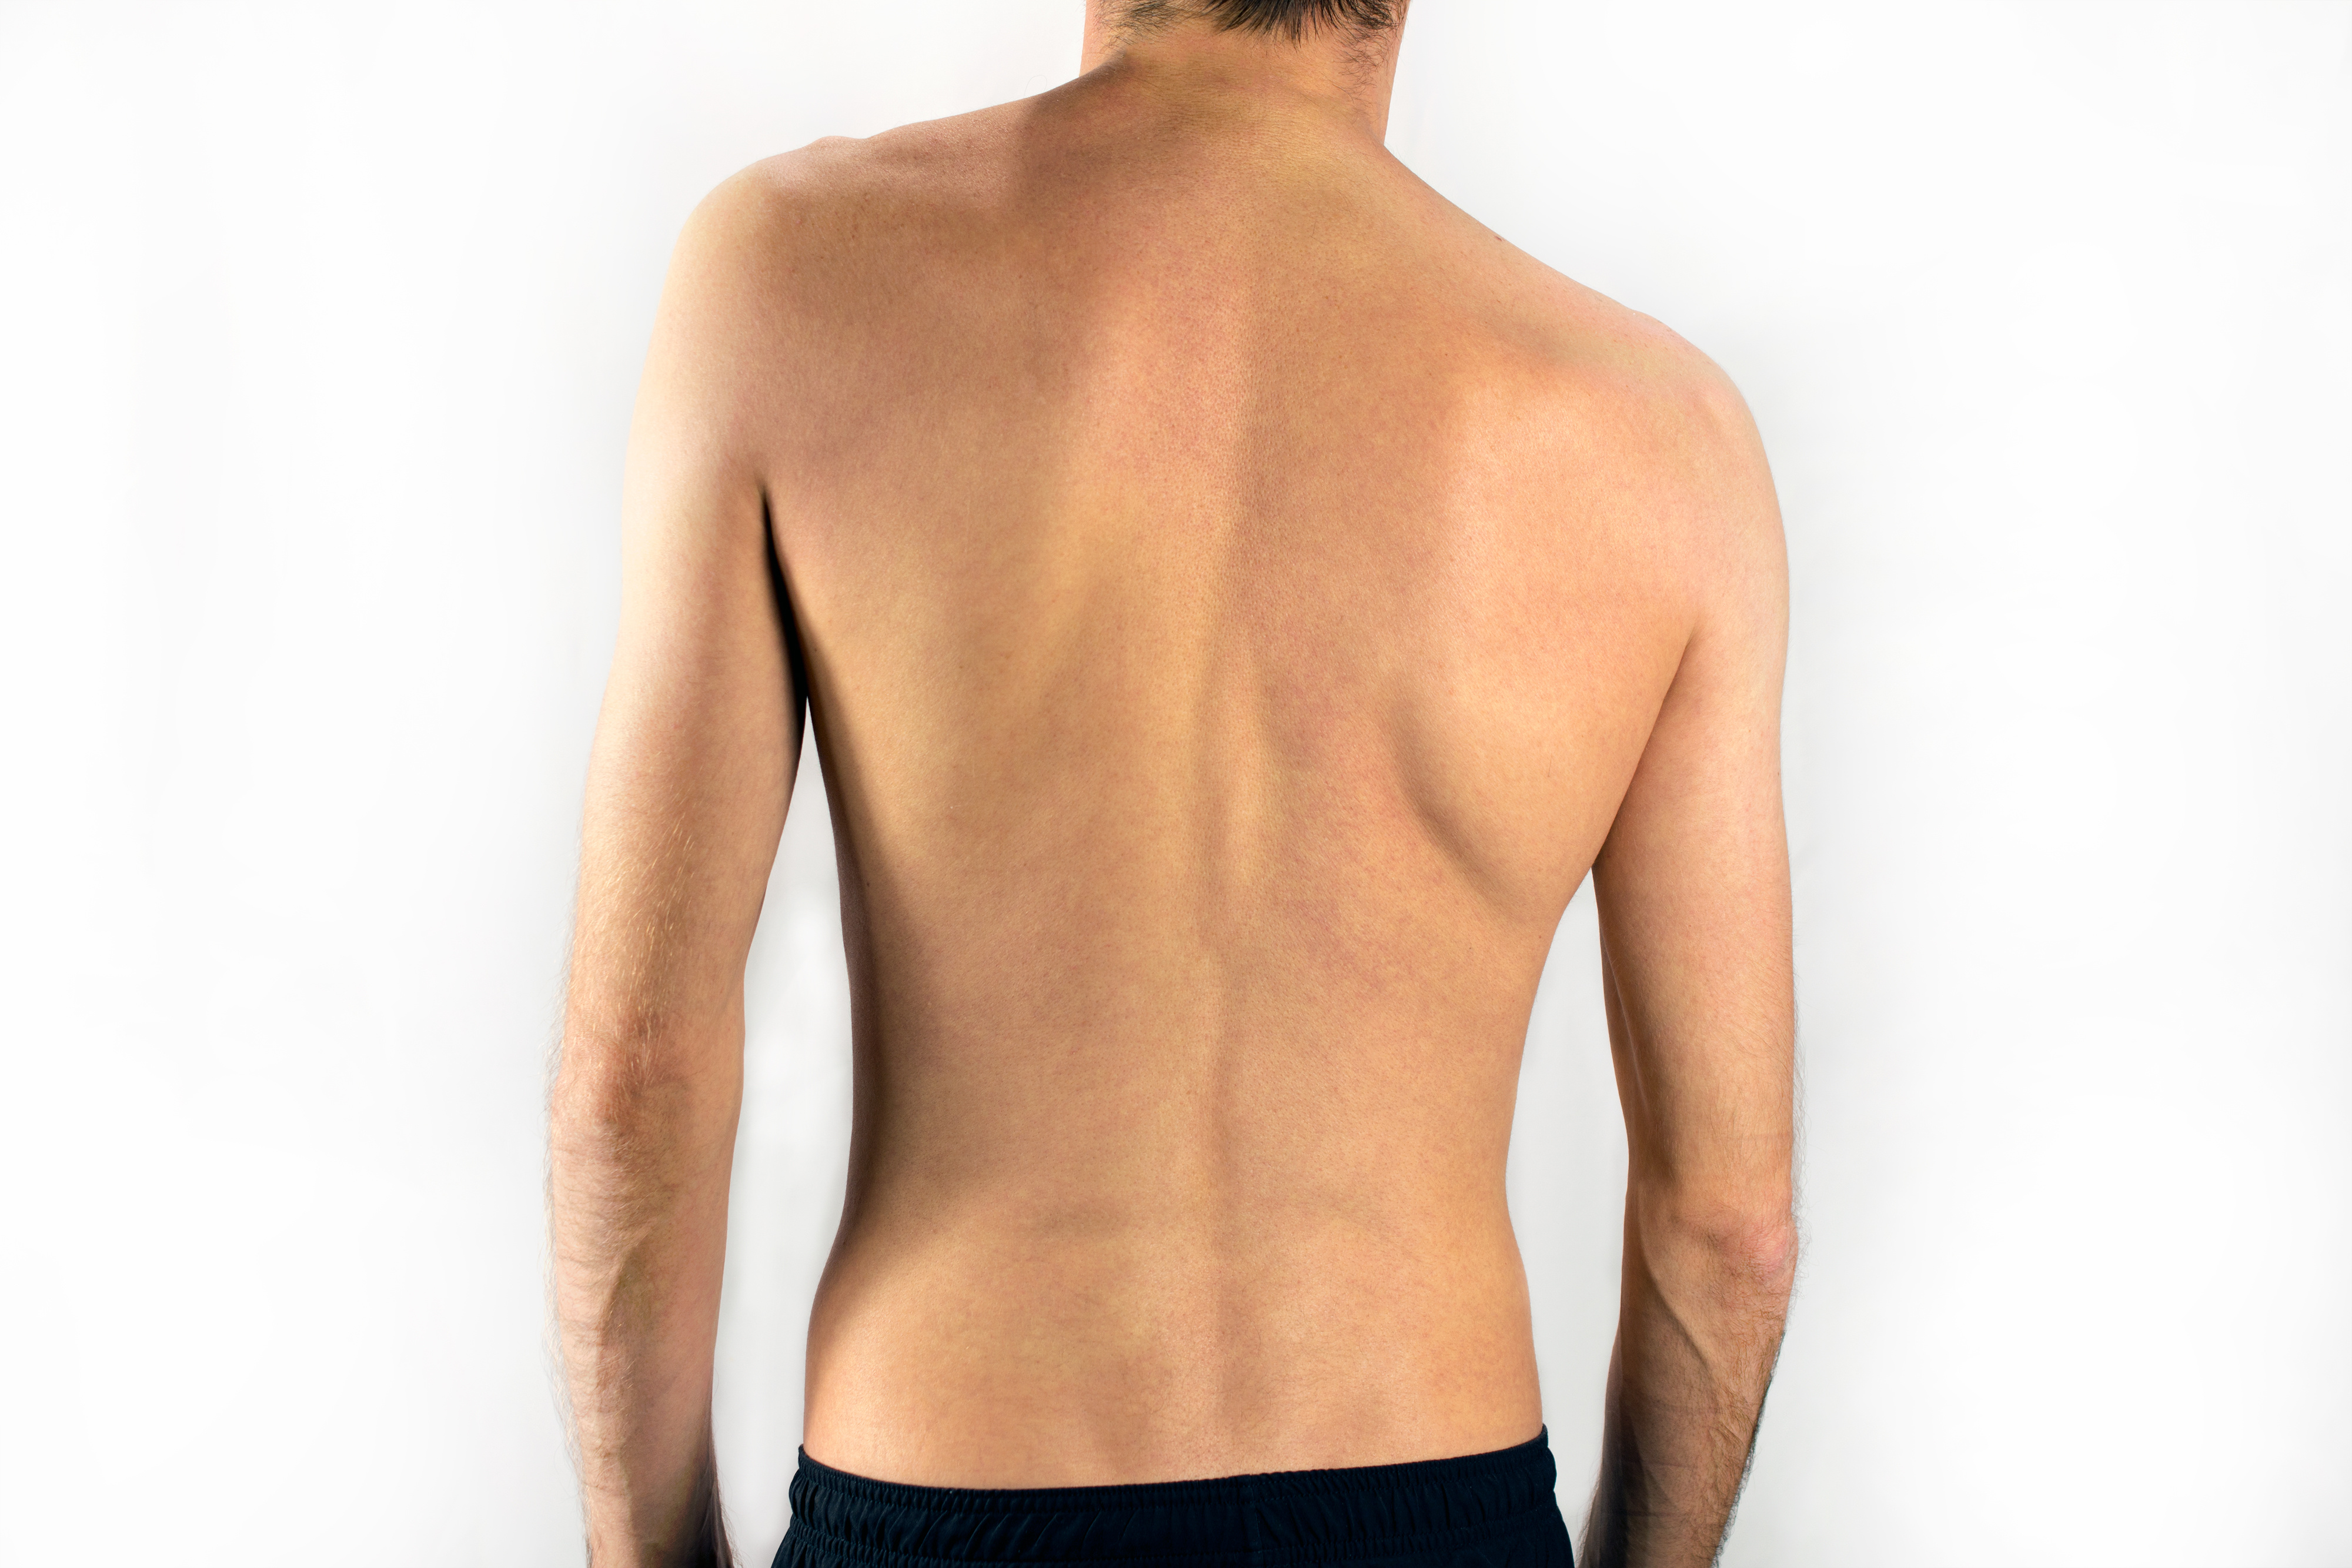 how to tell if you have scoliosis